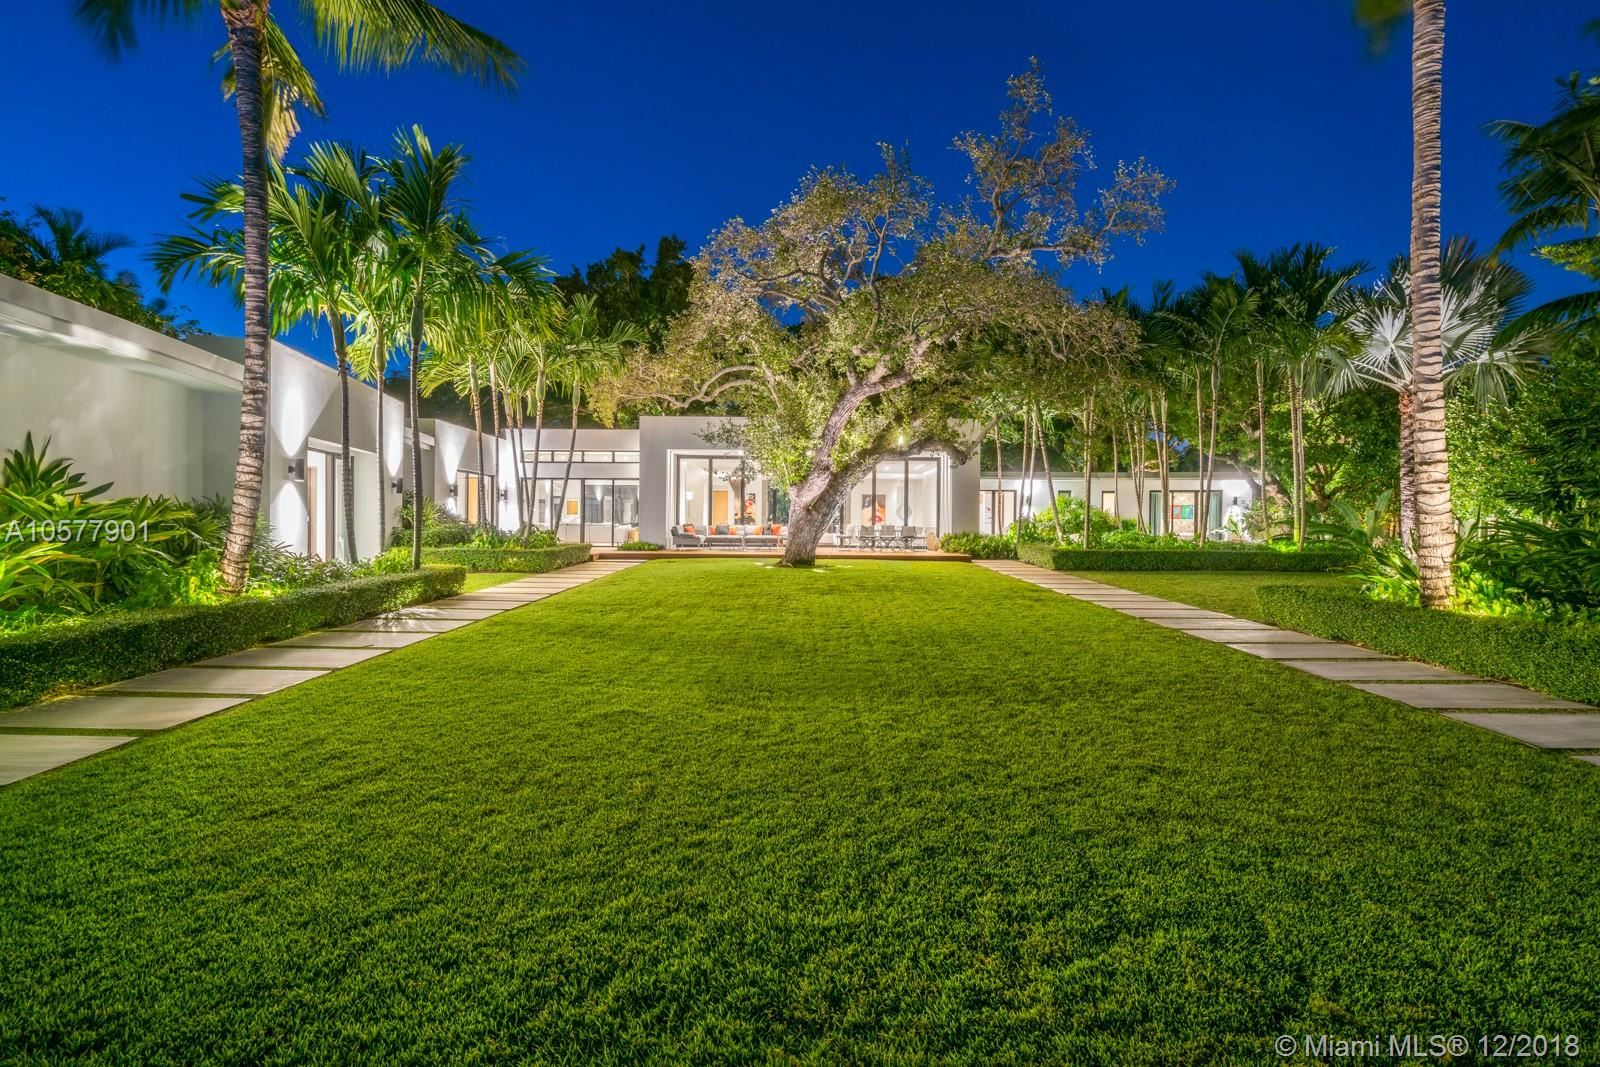 Photo 4 of Listing MLS a10577901 in 5045 Lakeview Drive Miami Beach FL 33140